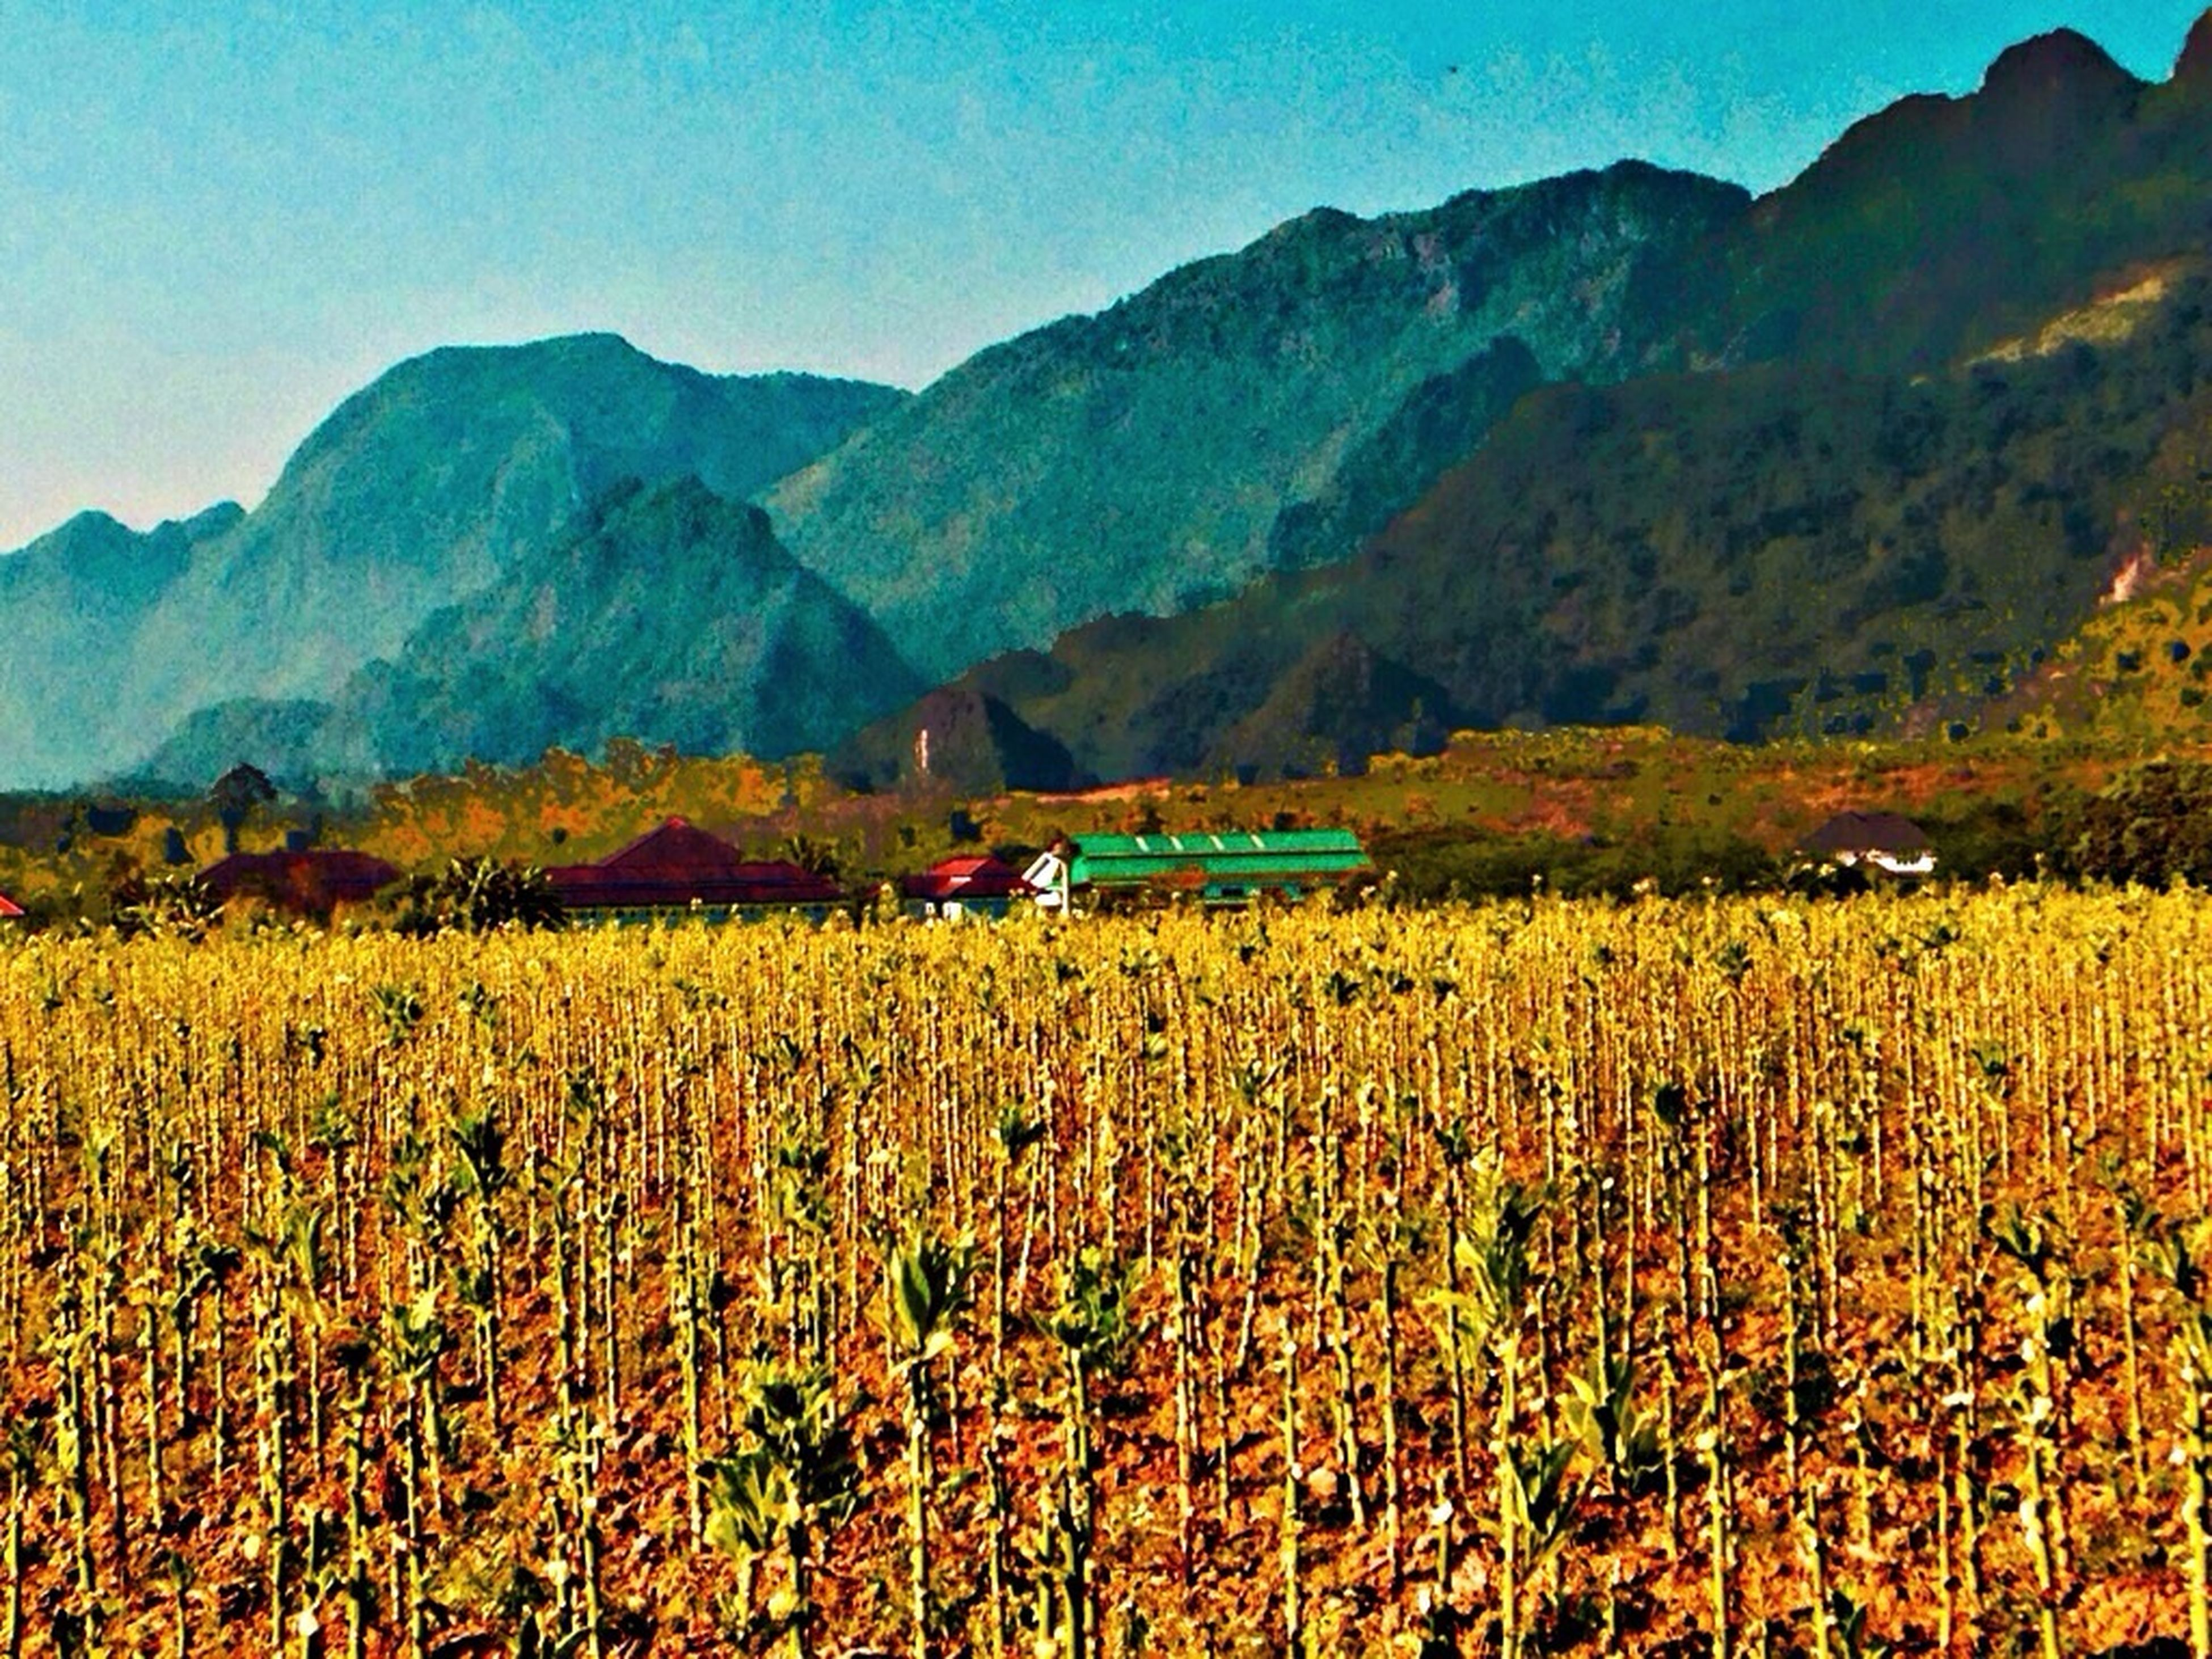 mountain, landscape, rural scene, agriculture, beauty in nature, field, tranquil scene, tranquility, scenics, farm, crop, growth, nature, yellow, mountain range, plant, flower, sky, cultivated land, non-urban scene